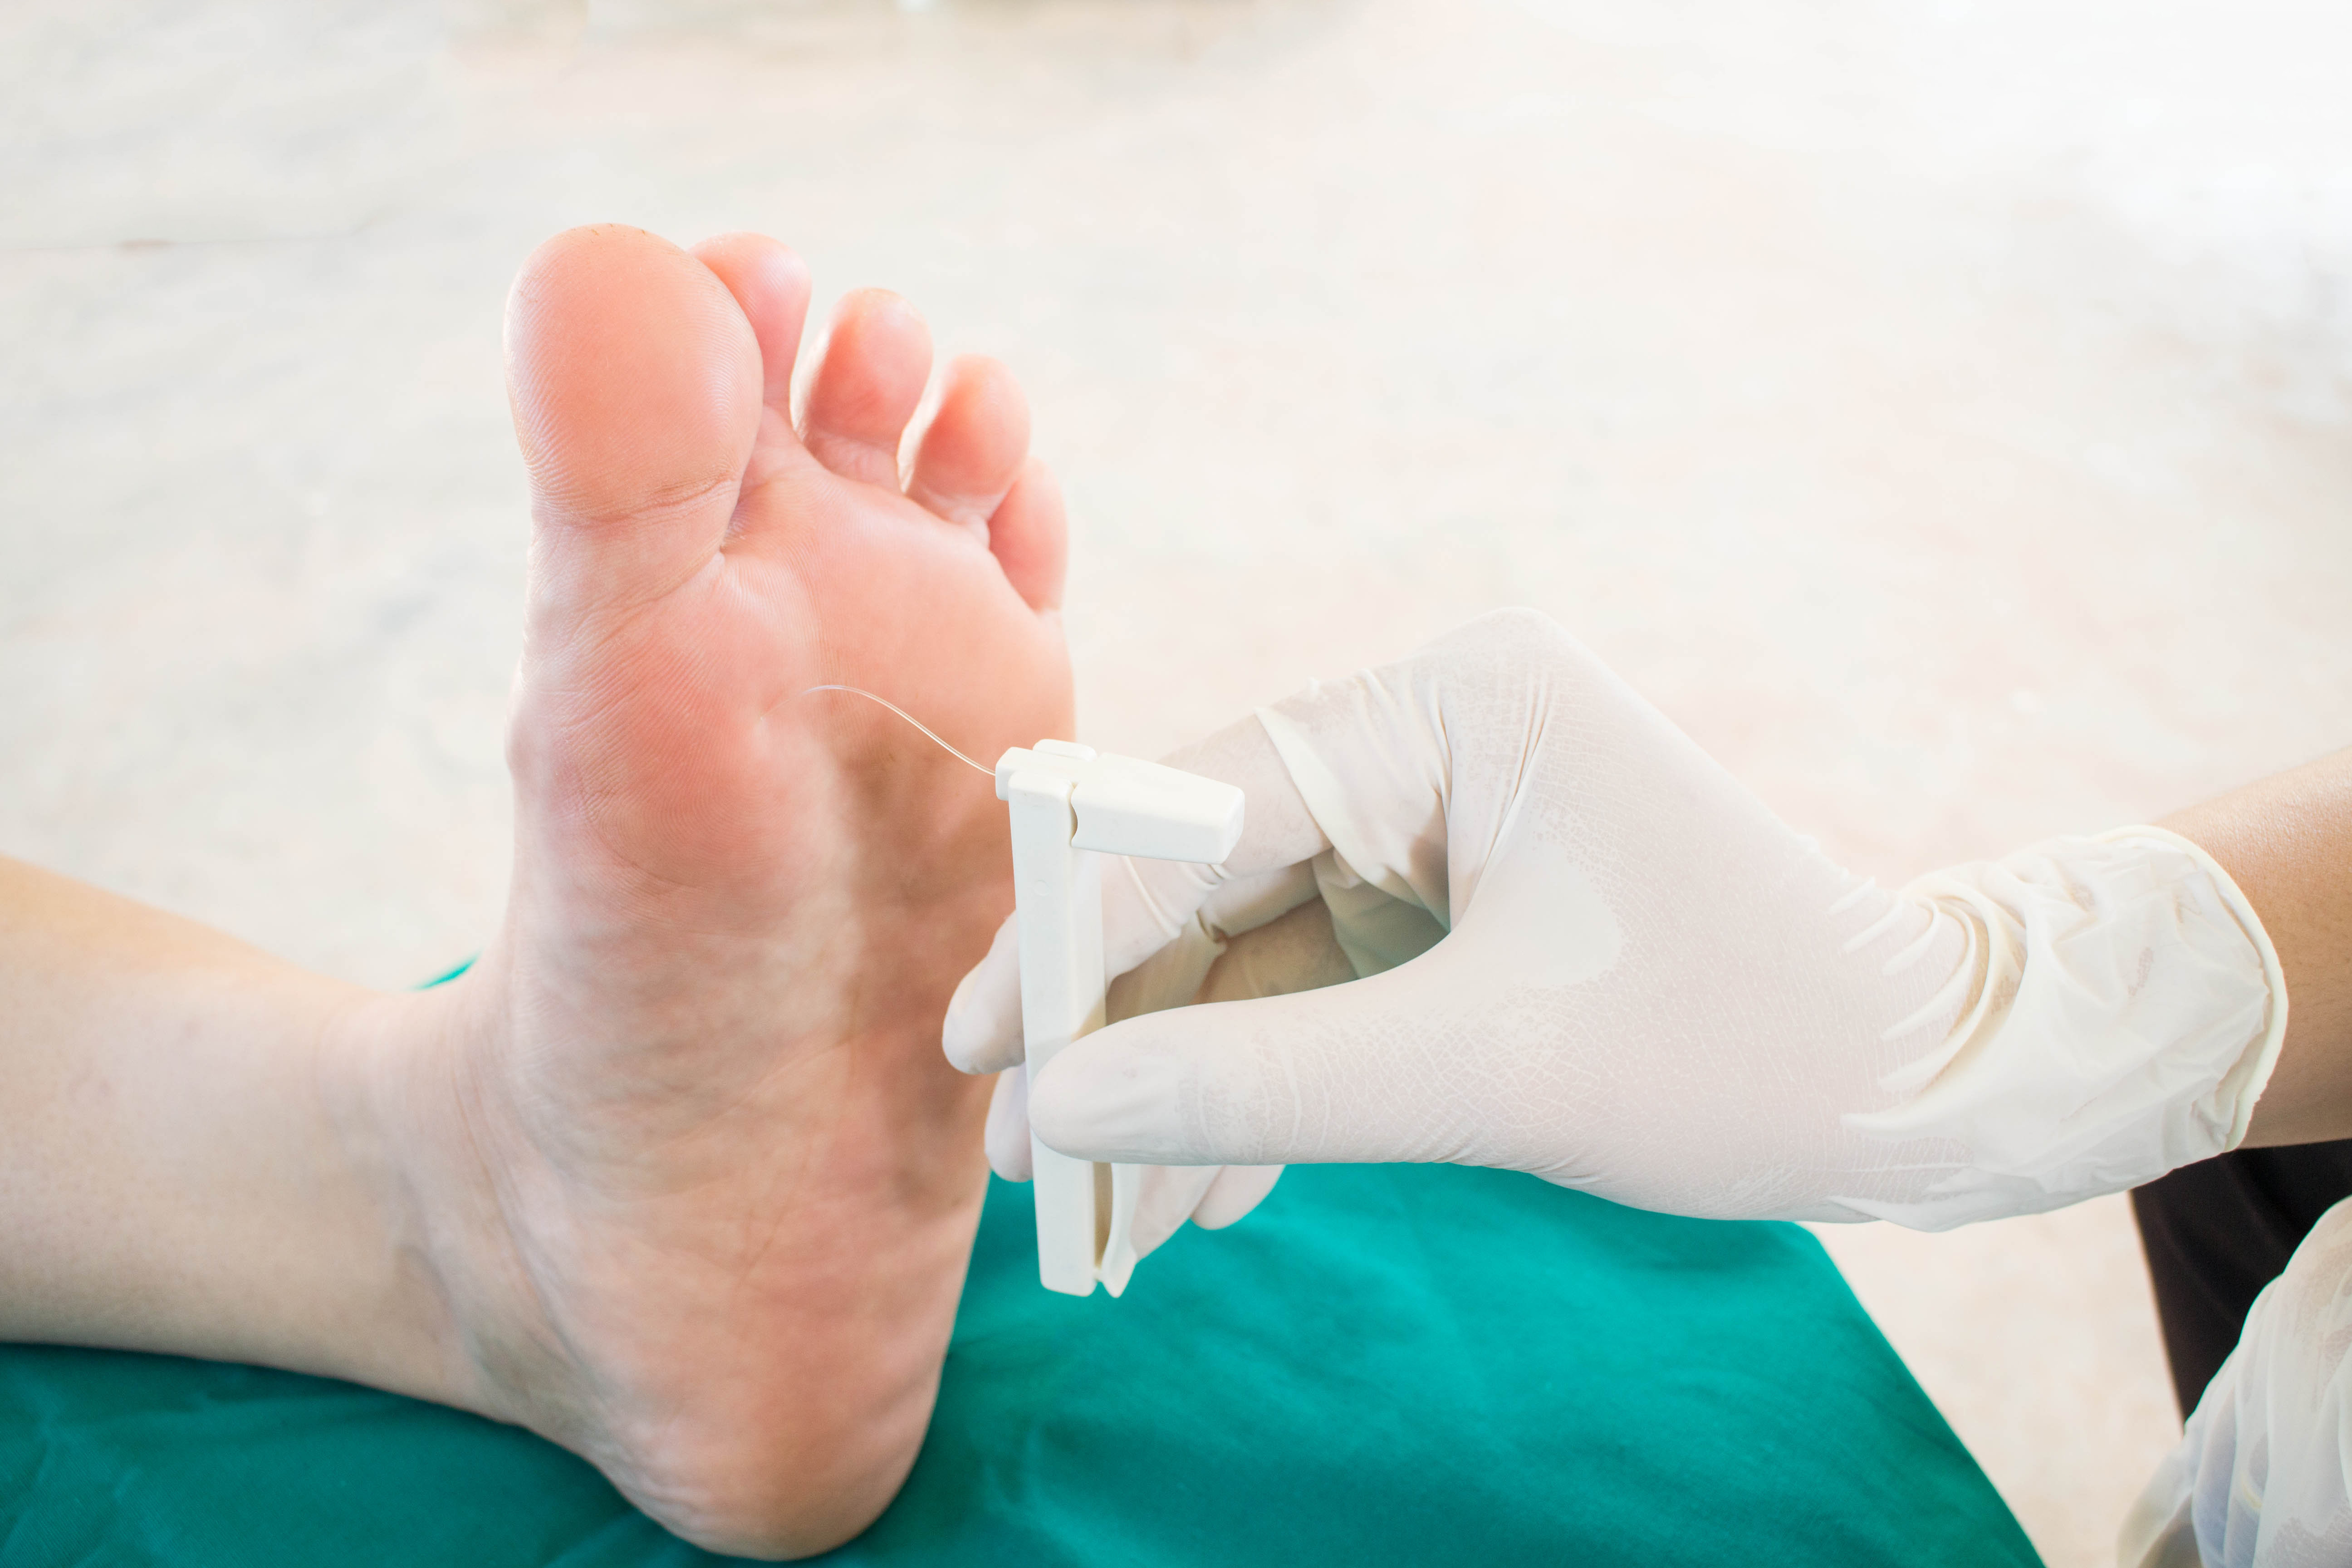 Bare foot receiving monofilament exam to detect nerve damage